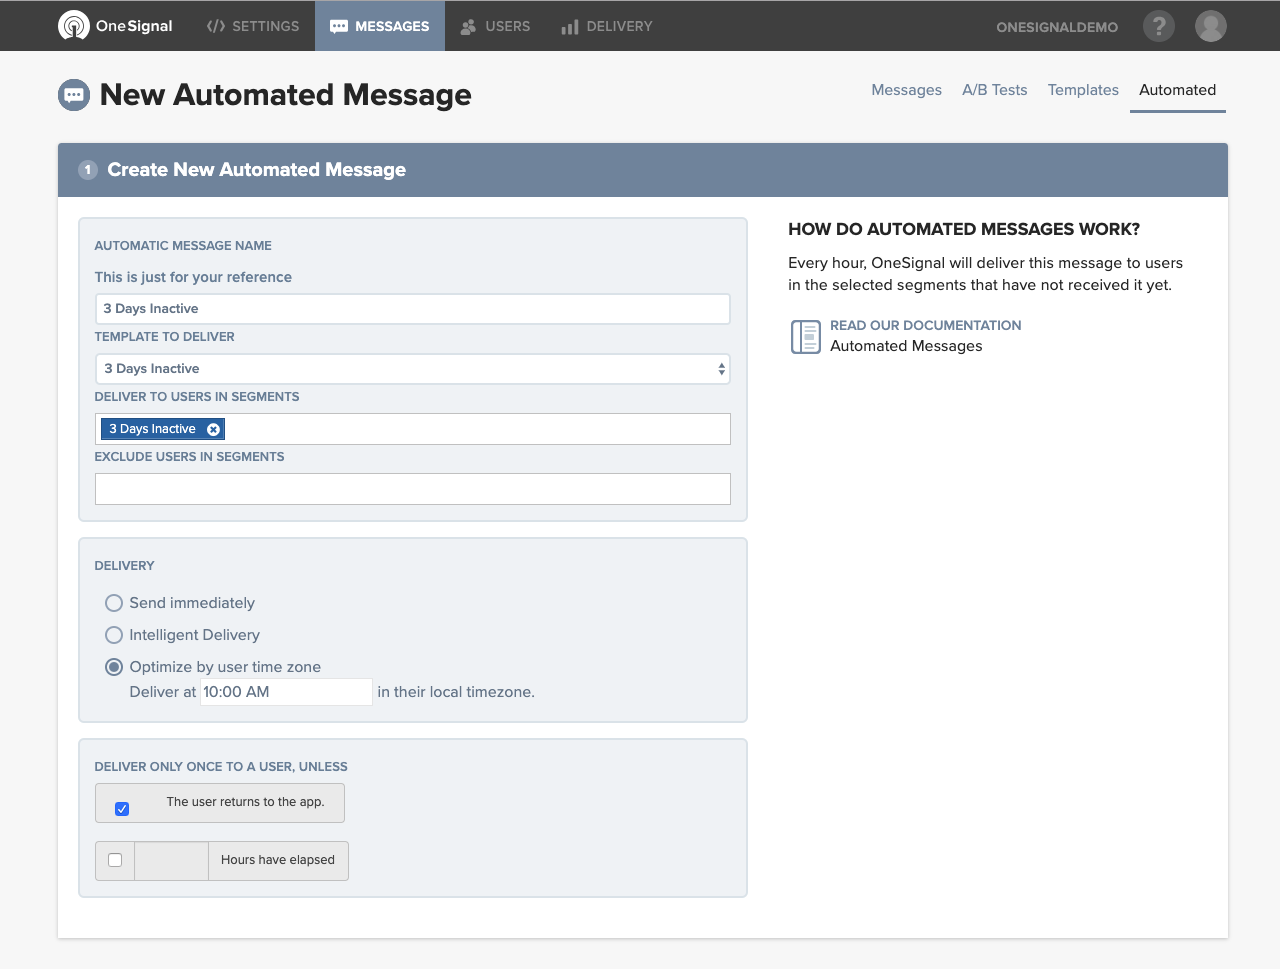 Automated Messages